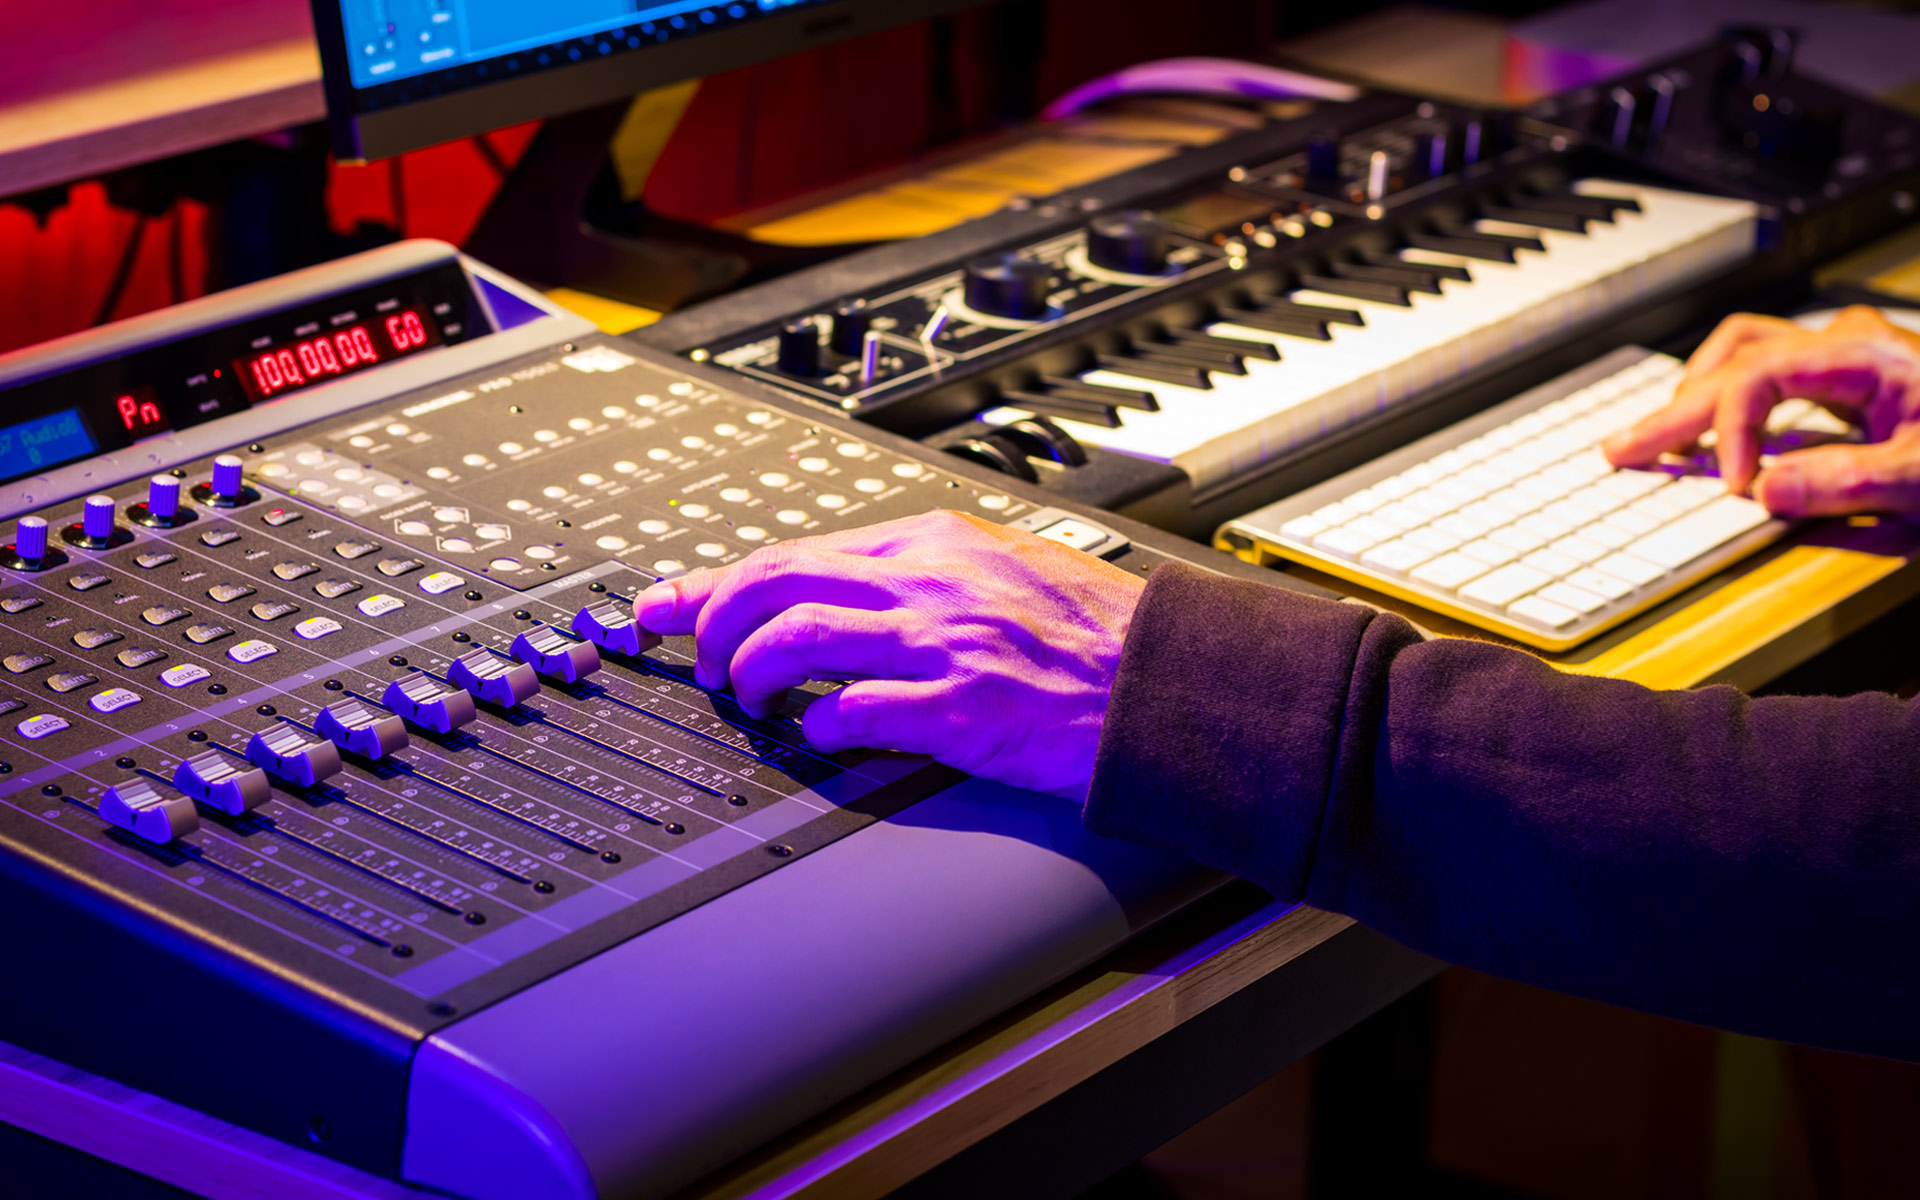 Music Production Alumni Recognized by Sweetwater, iZotope, and Slate Digital